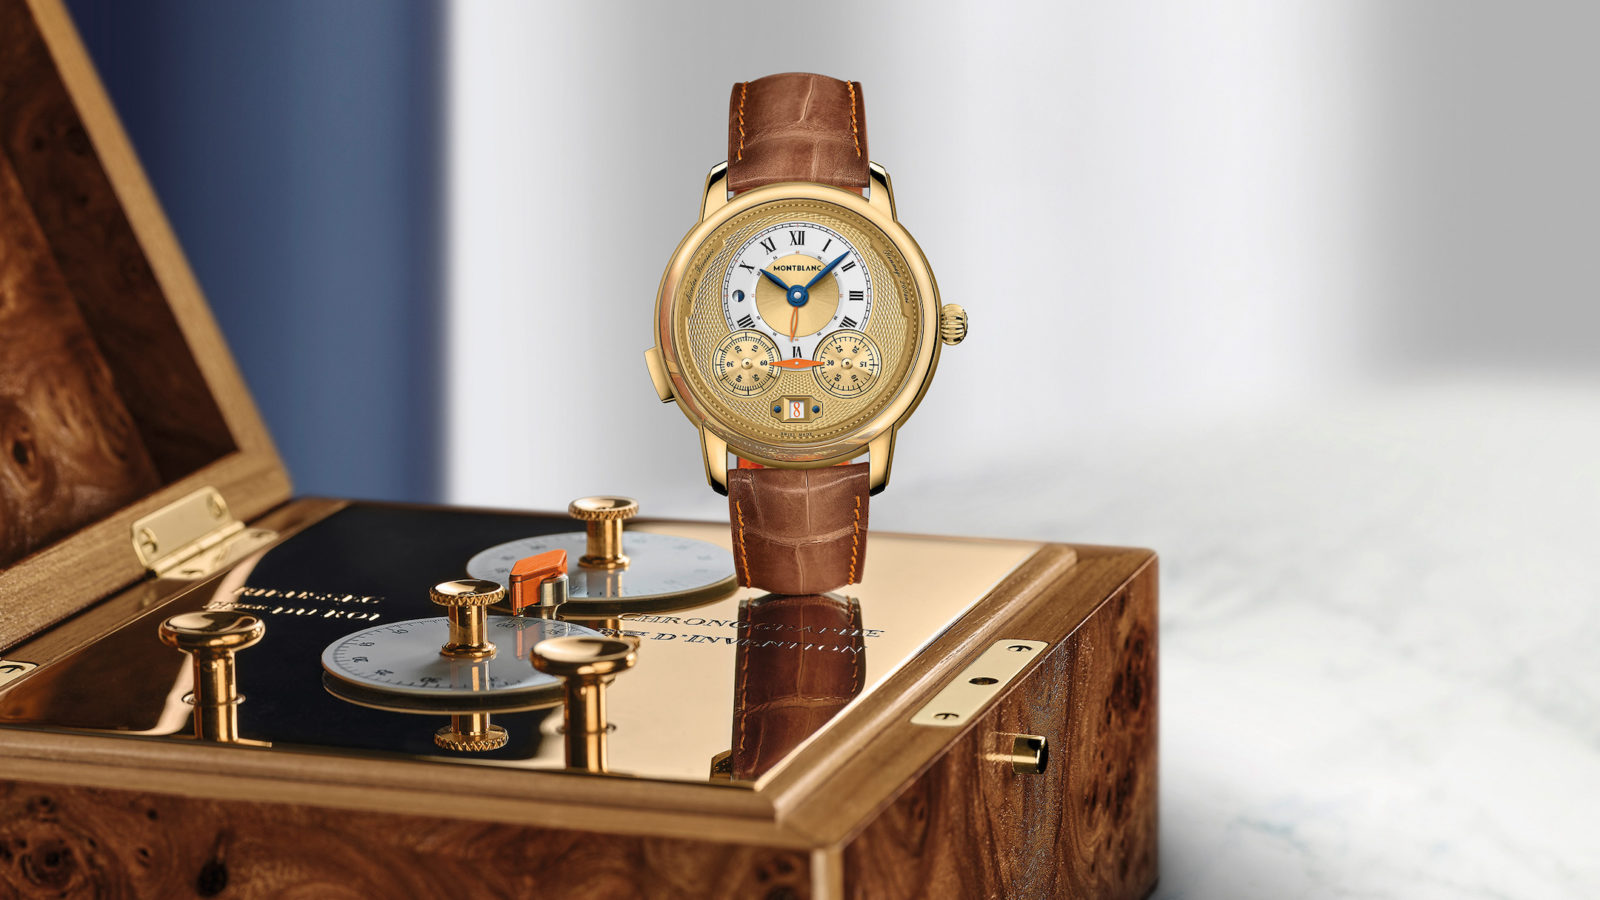 The Most Unique Timepieces From the 9th Only Watch Charity Auction